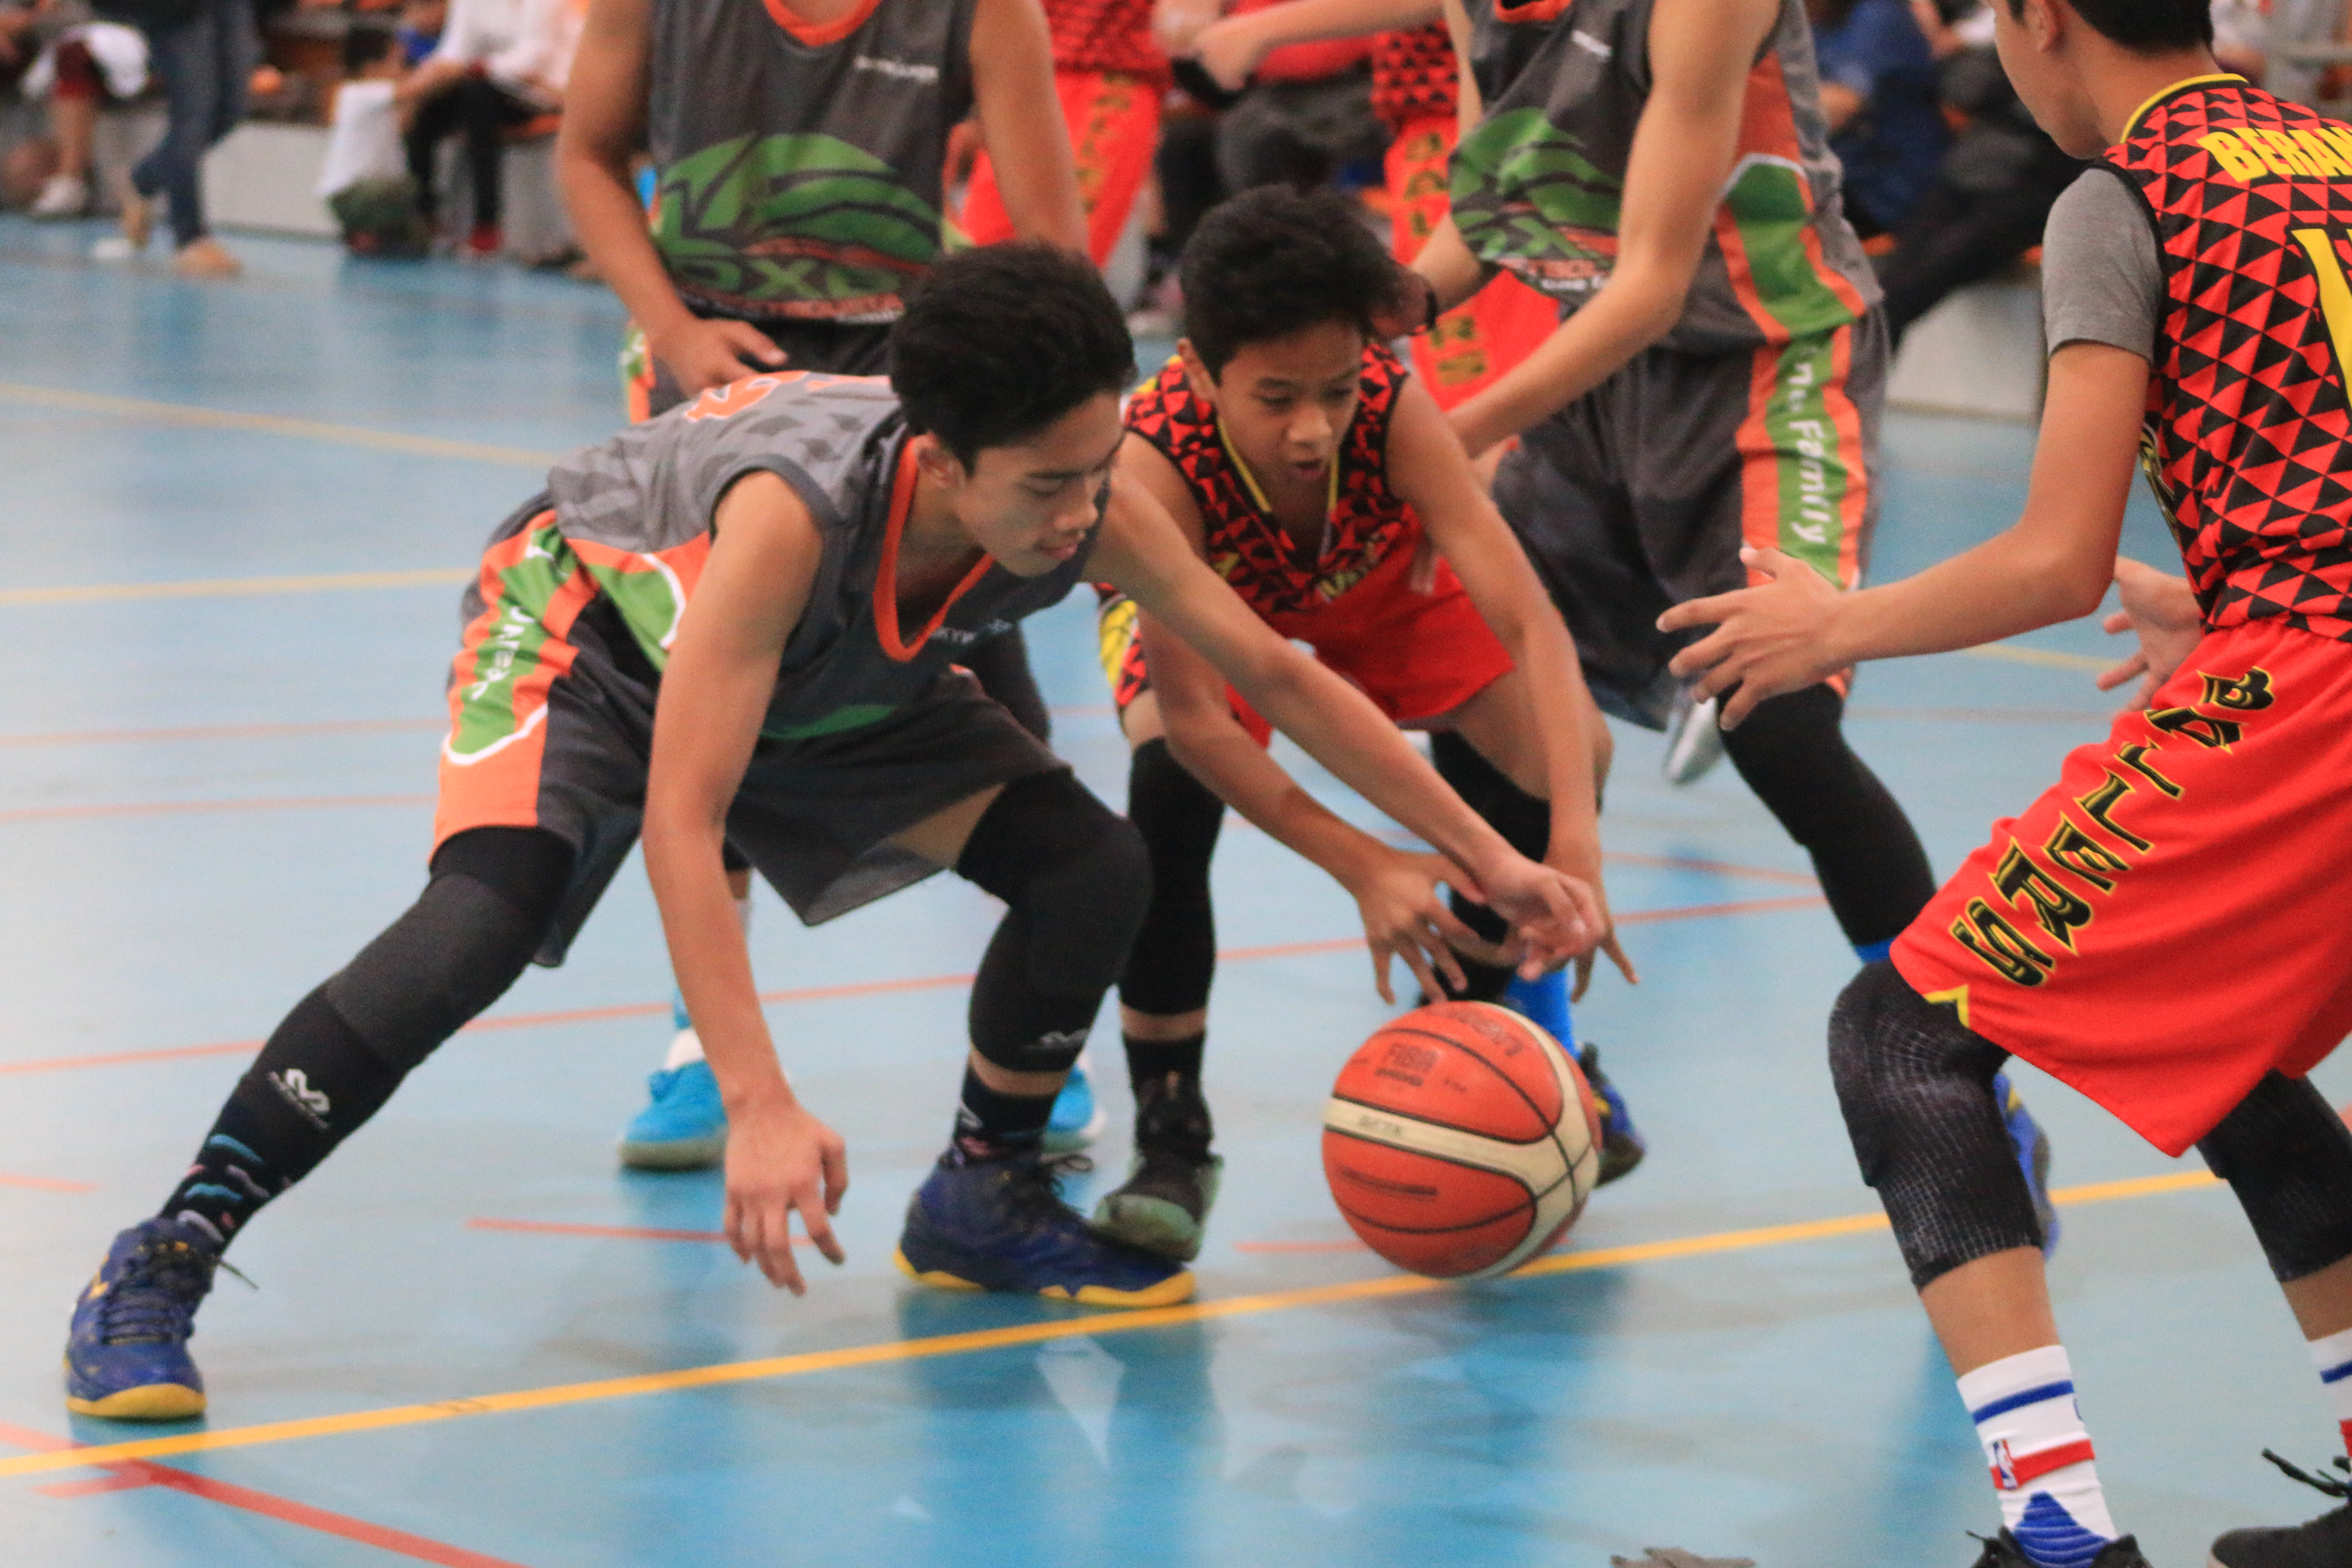 RVV Ballers shreds DXB Basketbolista, 49-32